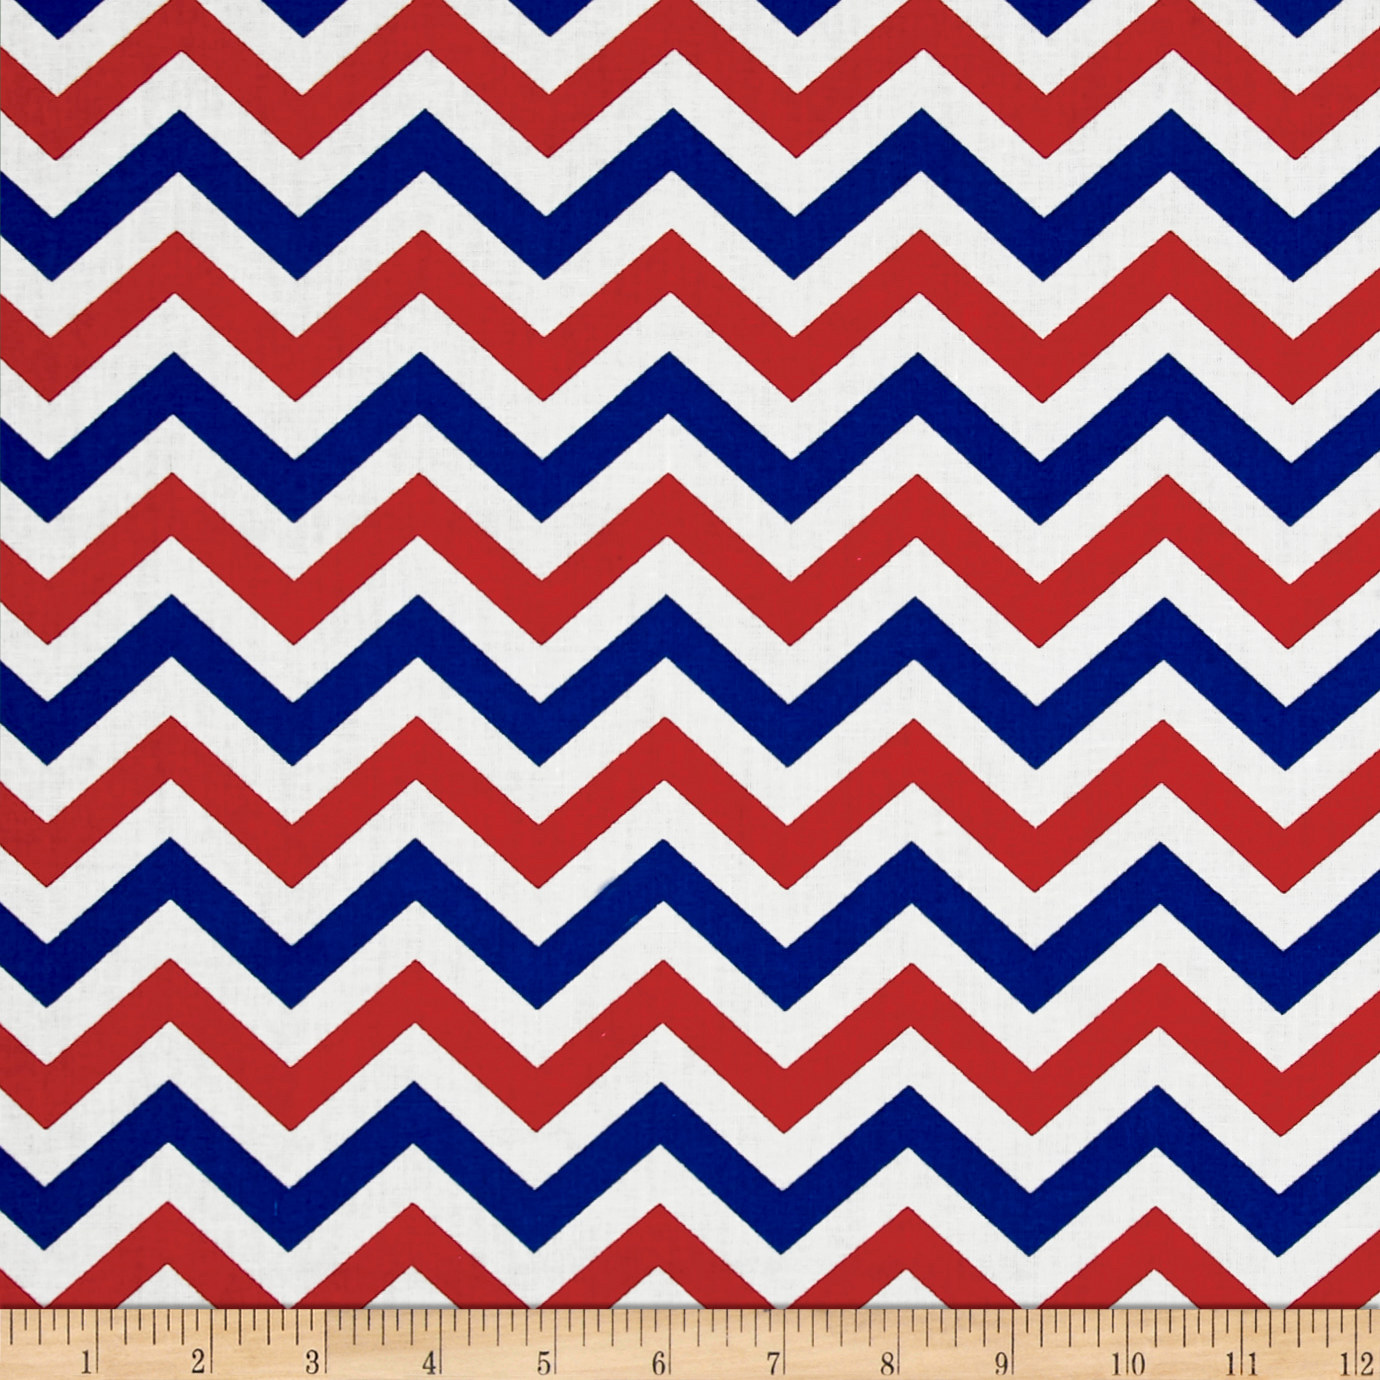 Made In The USA II Chevron Red/White/Blue Fabric